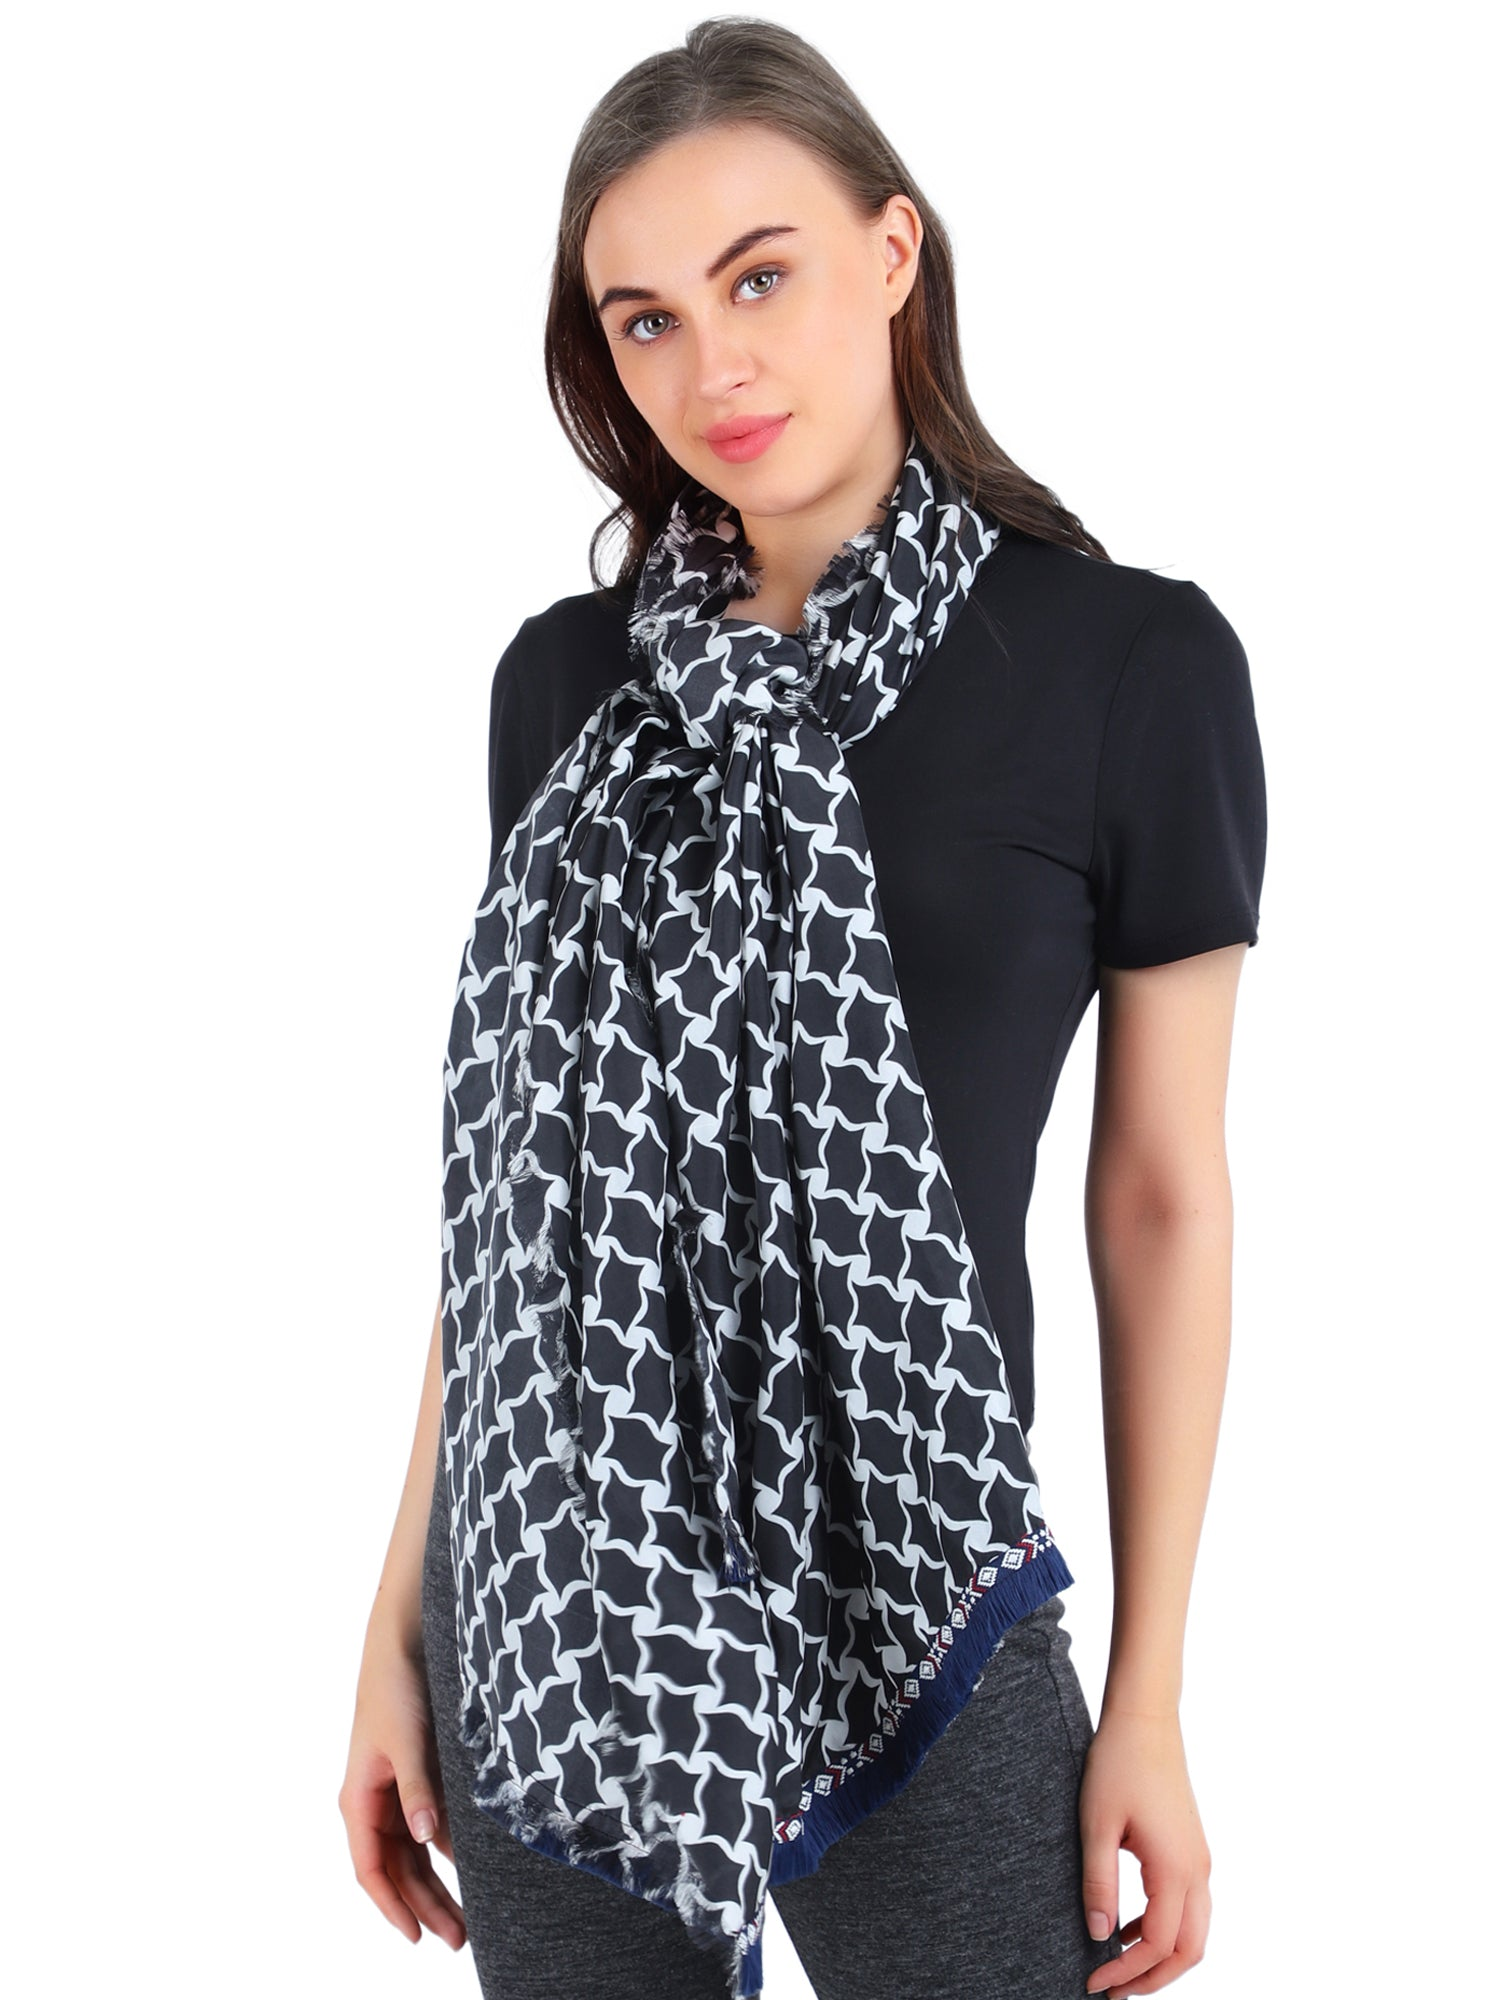 Pashma Black and White Silk Scarf